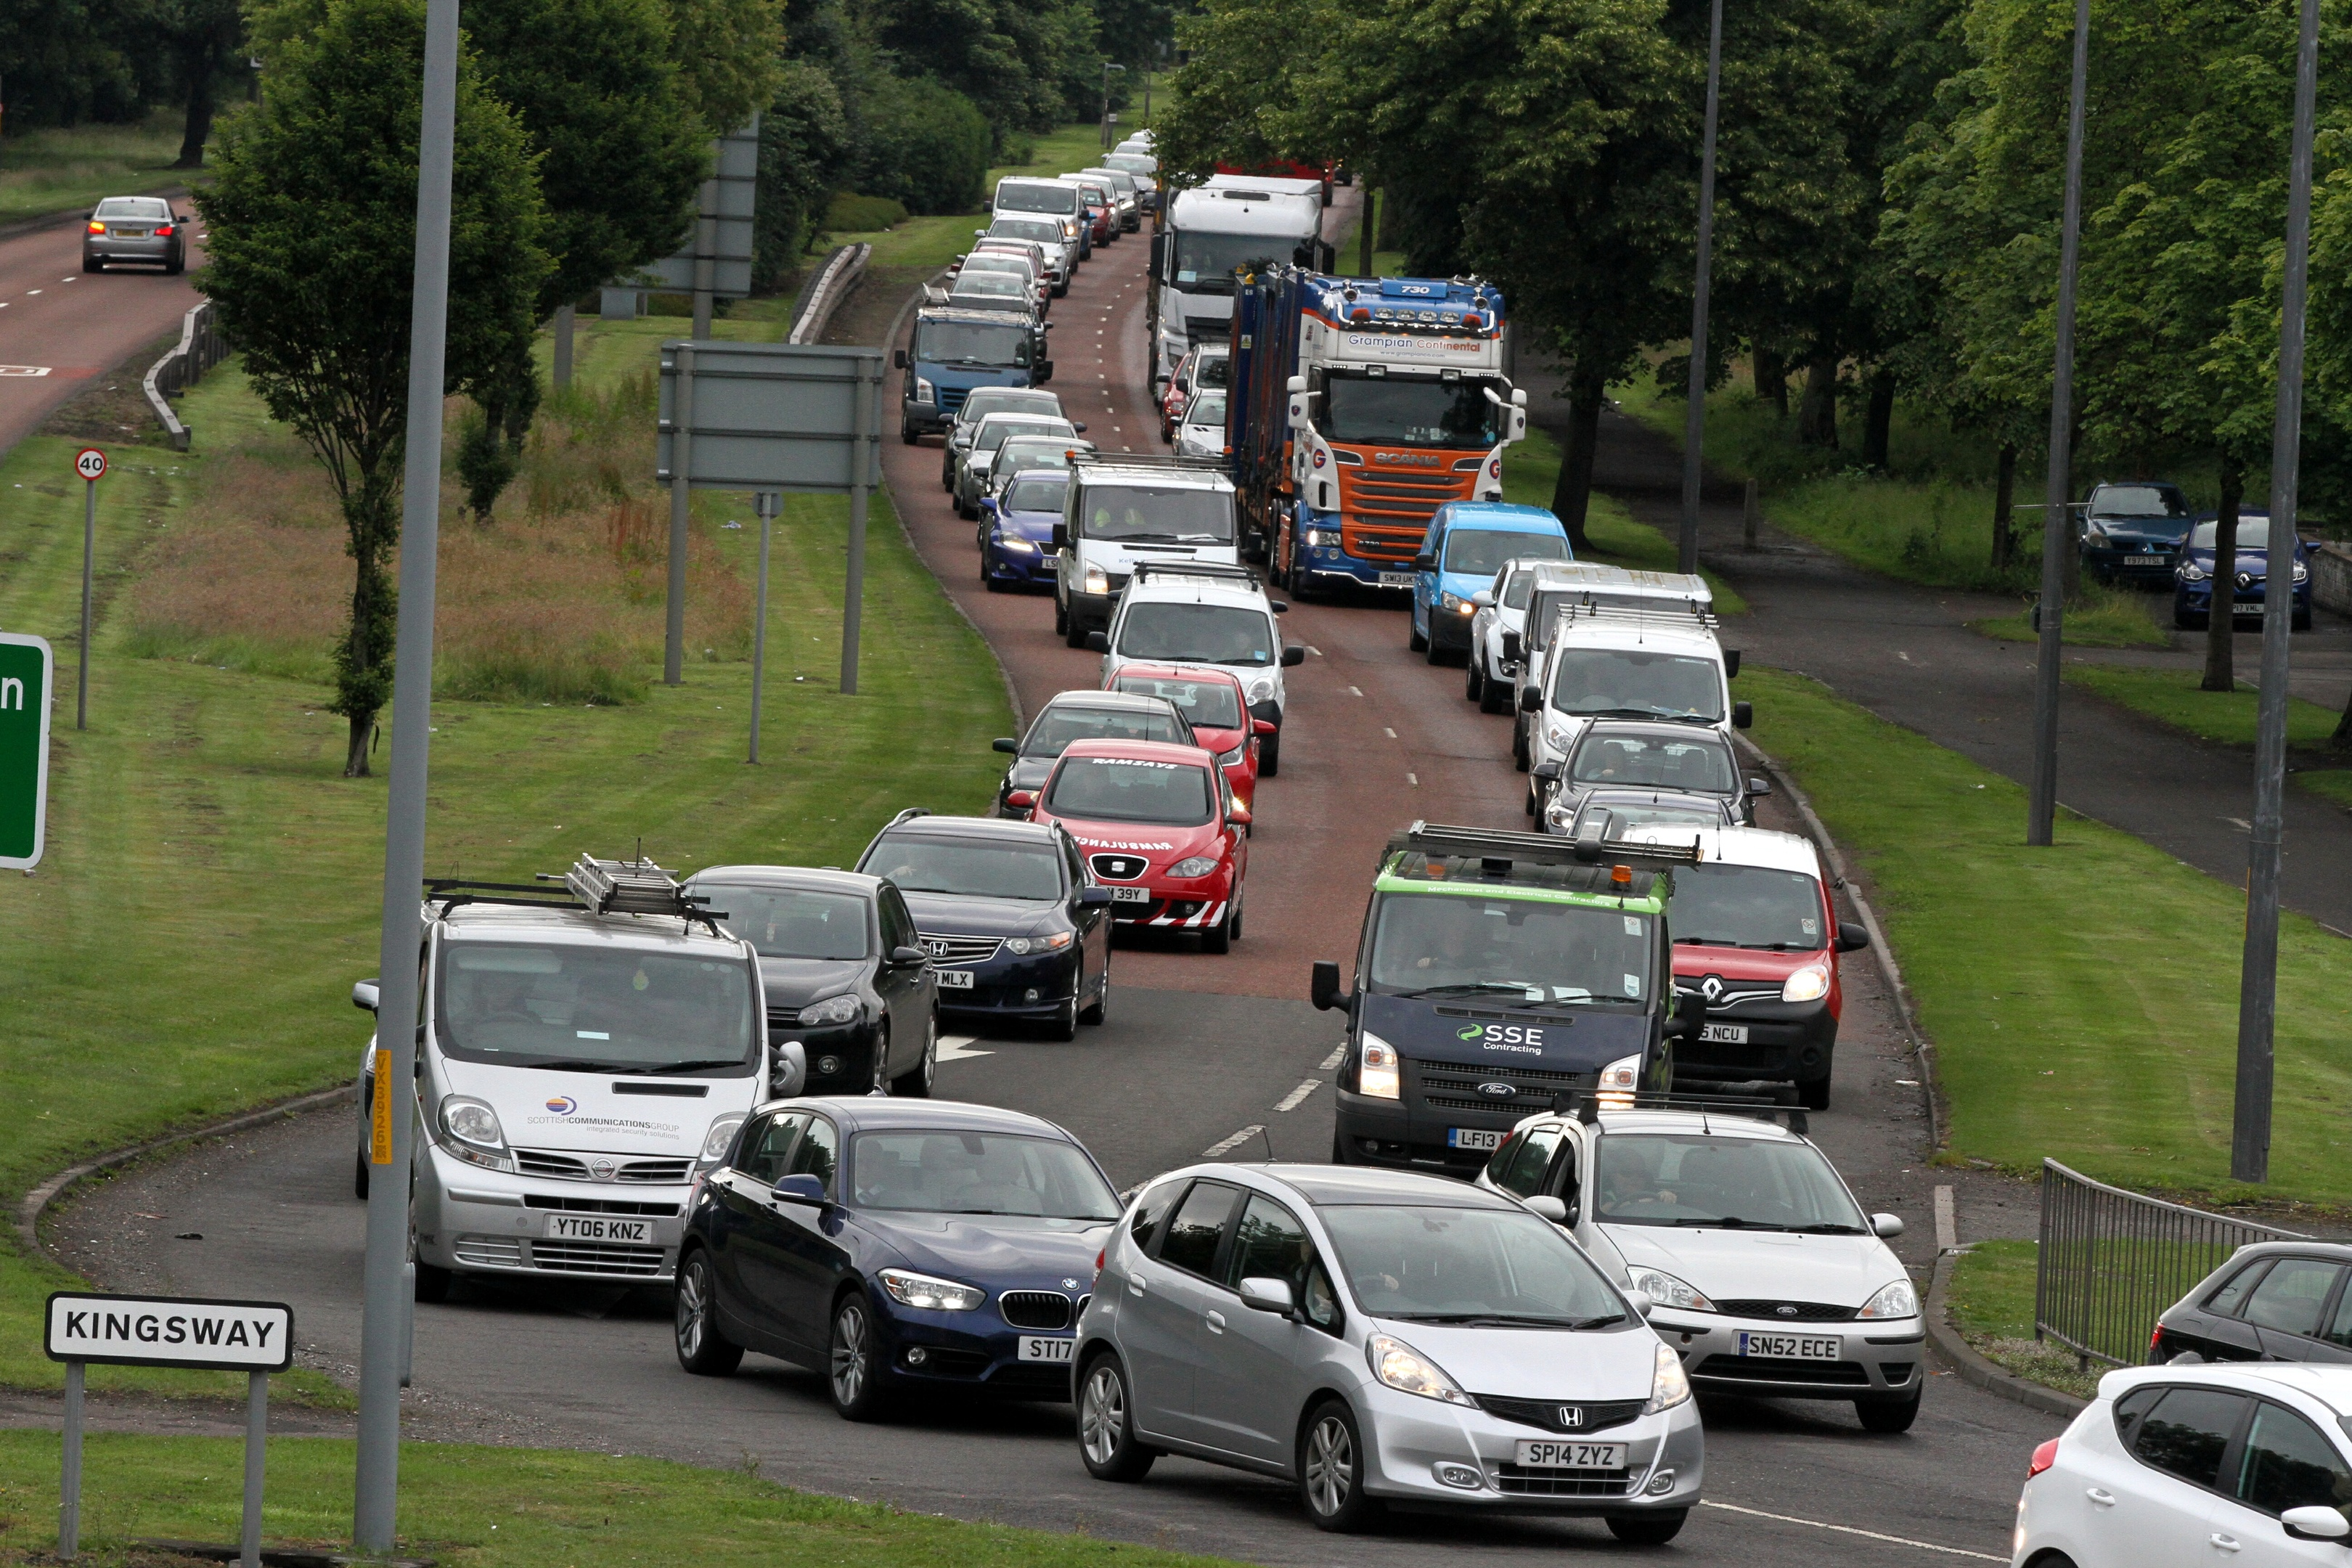 Traffic queuing towards the Old Glamis Road roundabout during rush hour, close to where the crossings are planned.